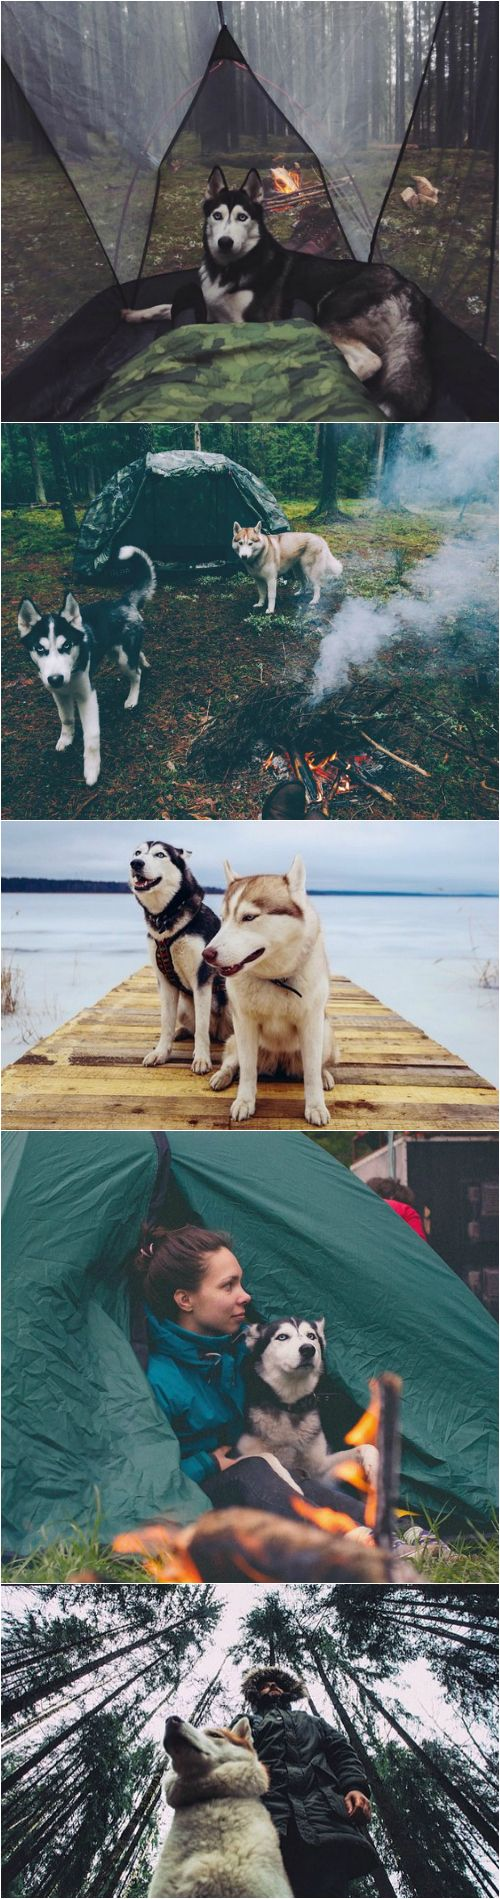 Siberian huskies make excellent partners for cold weather camping. ganeschabottest